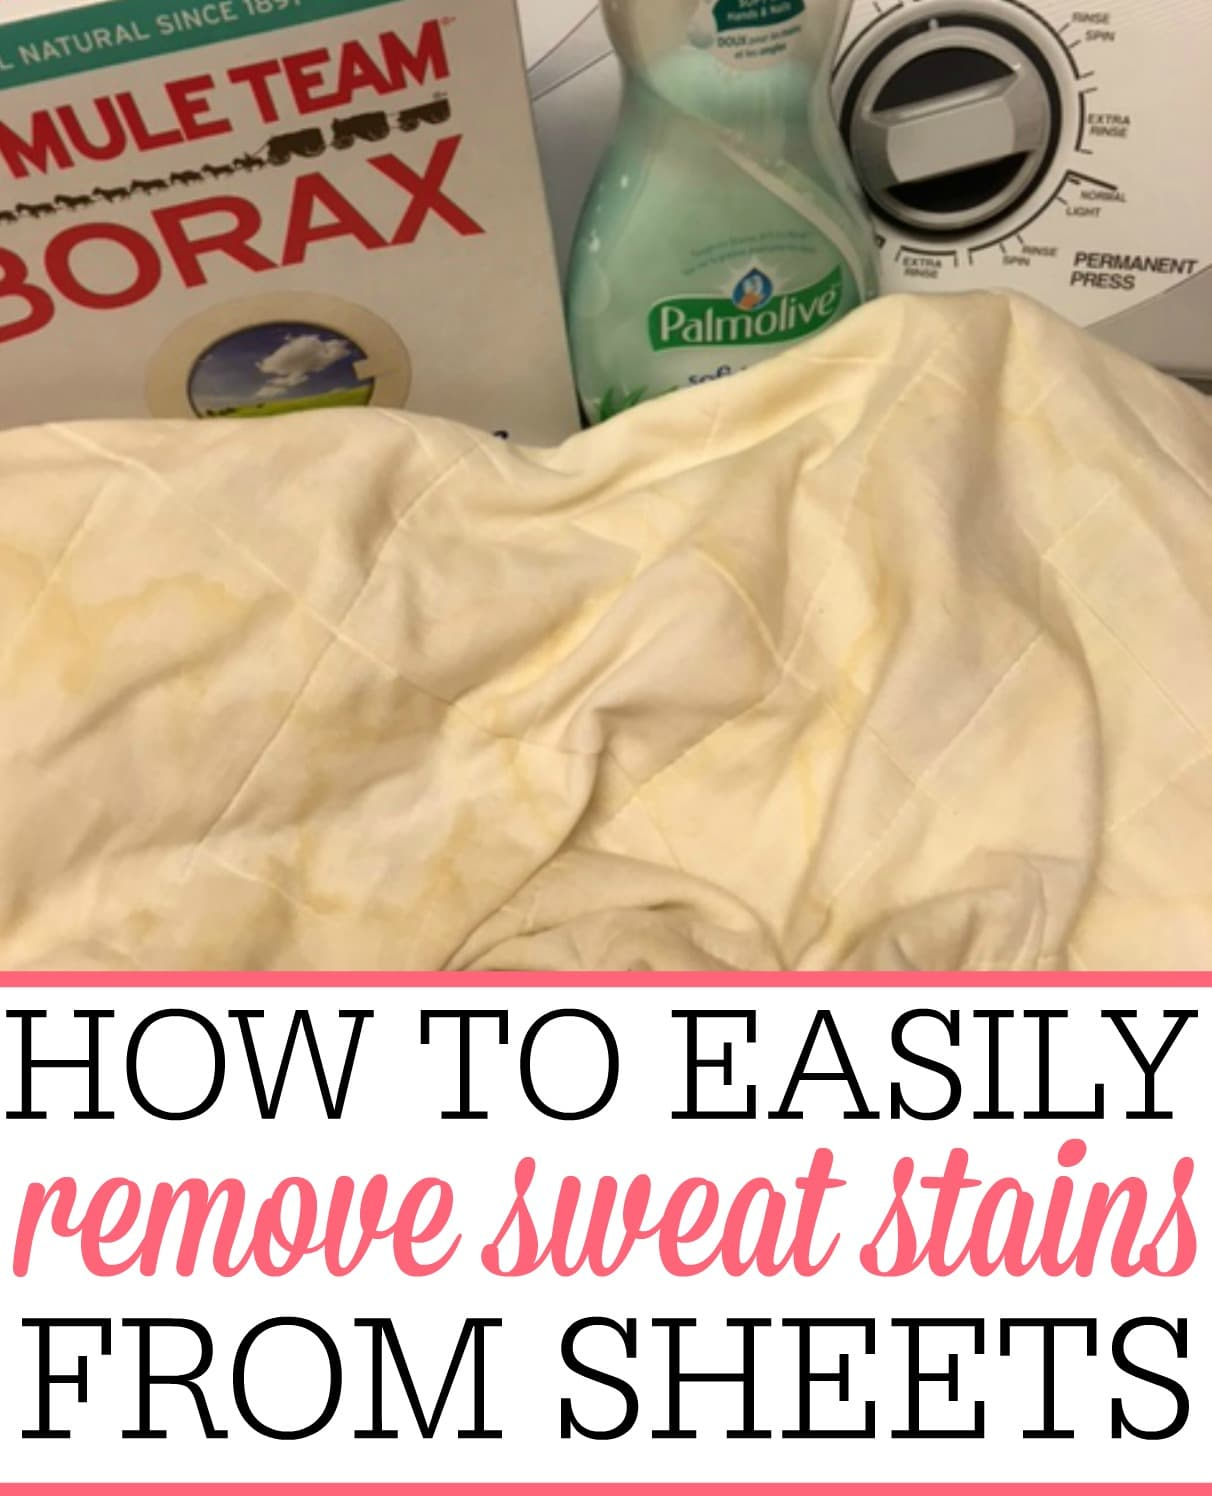 how to easily remove sweat stains